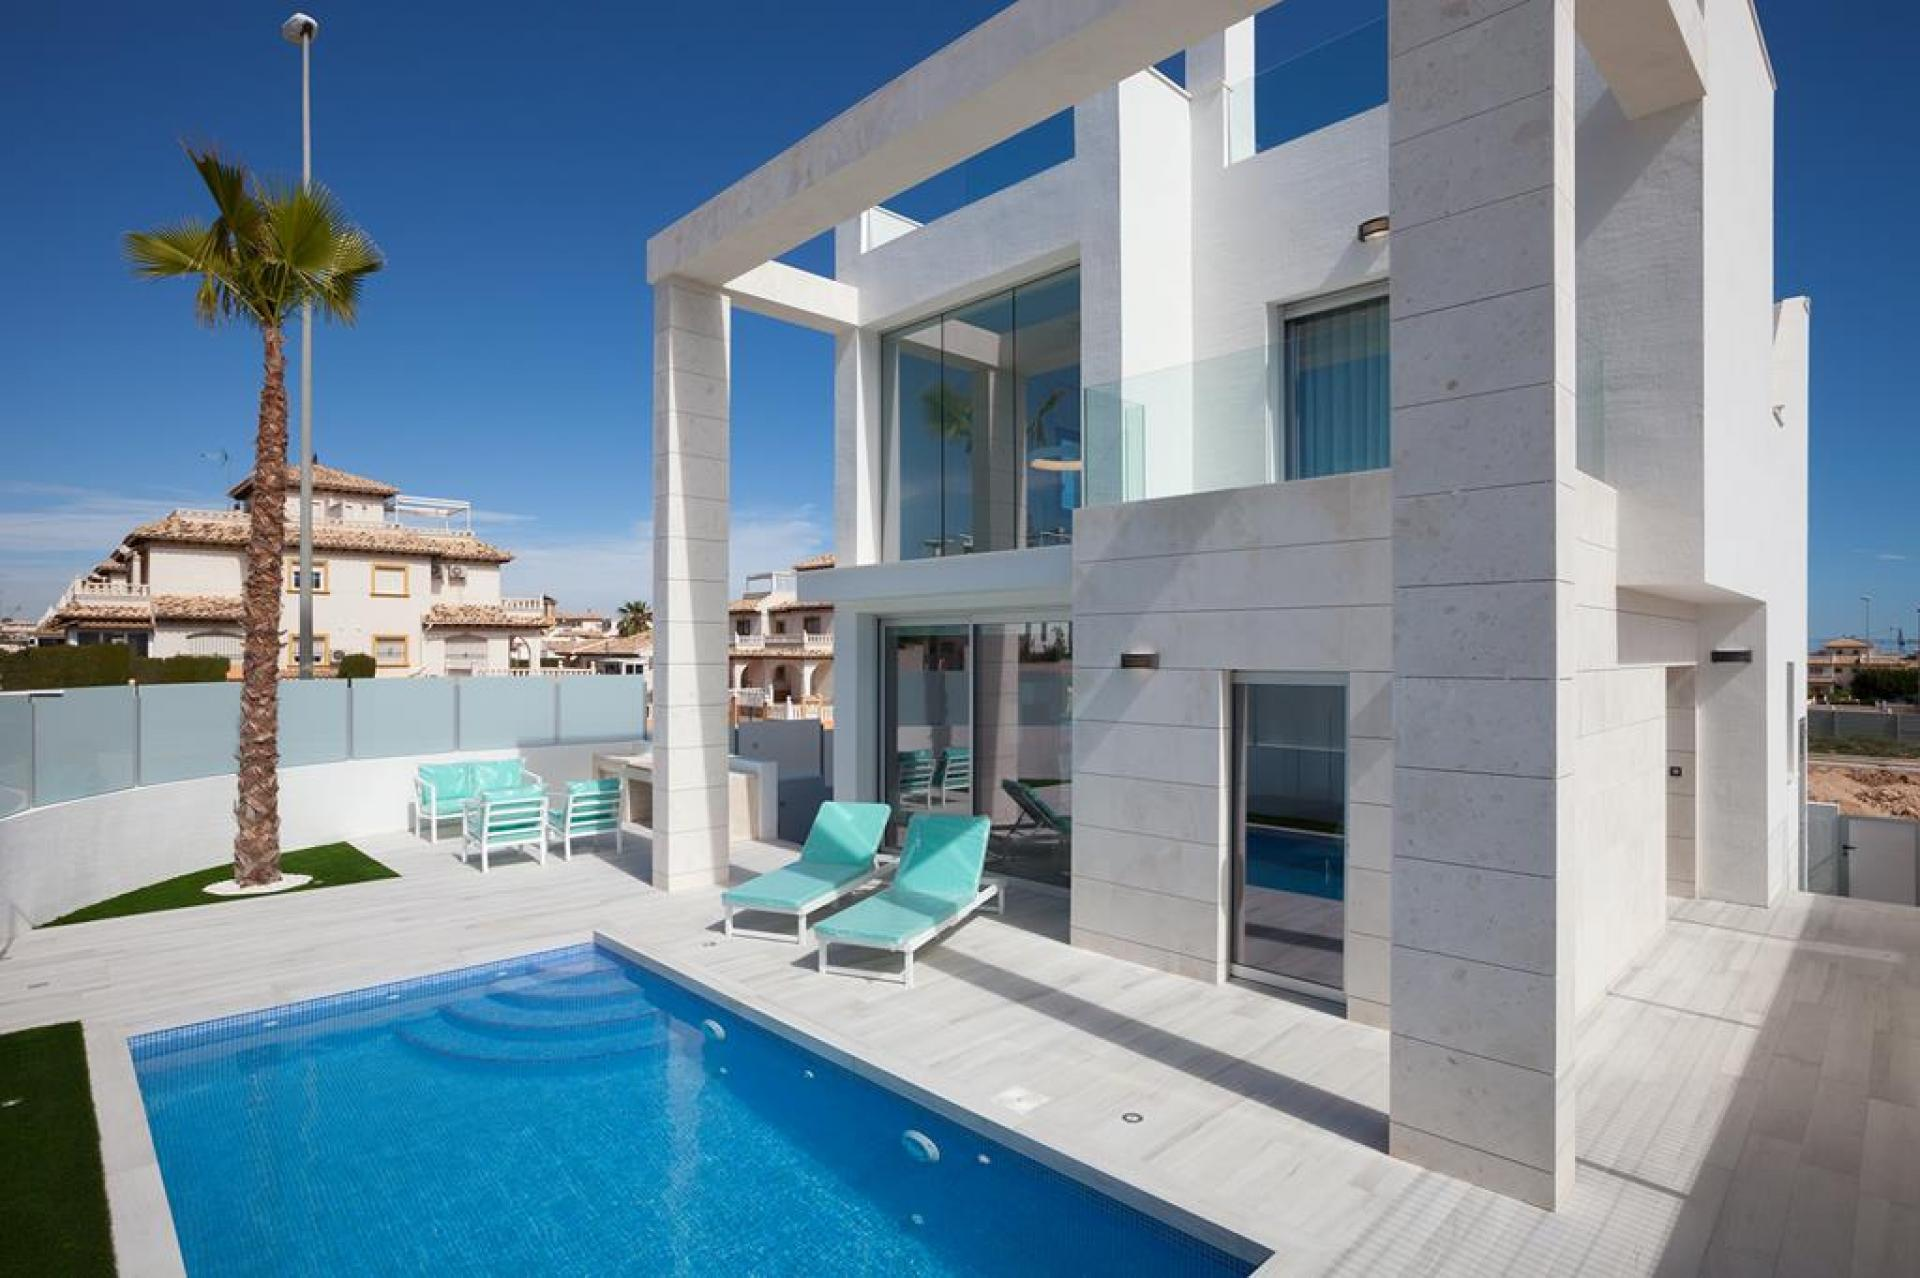 Villa in Cabo Roig (Alicante)